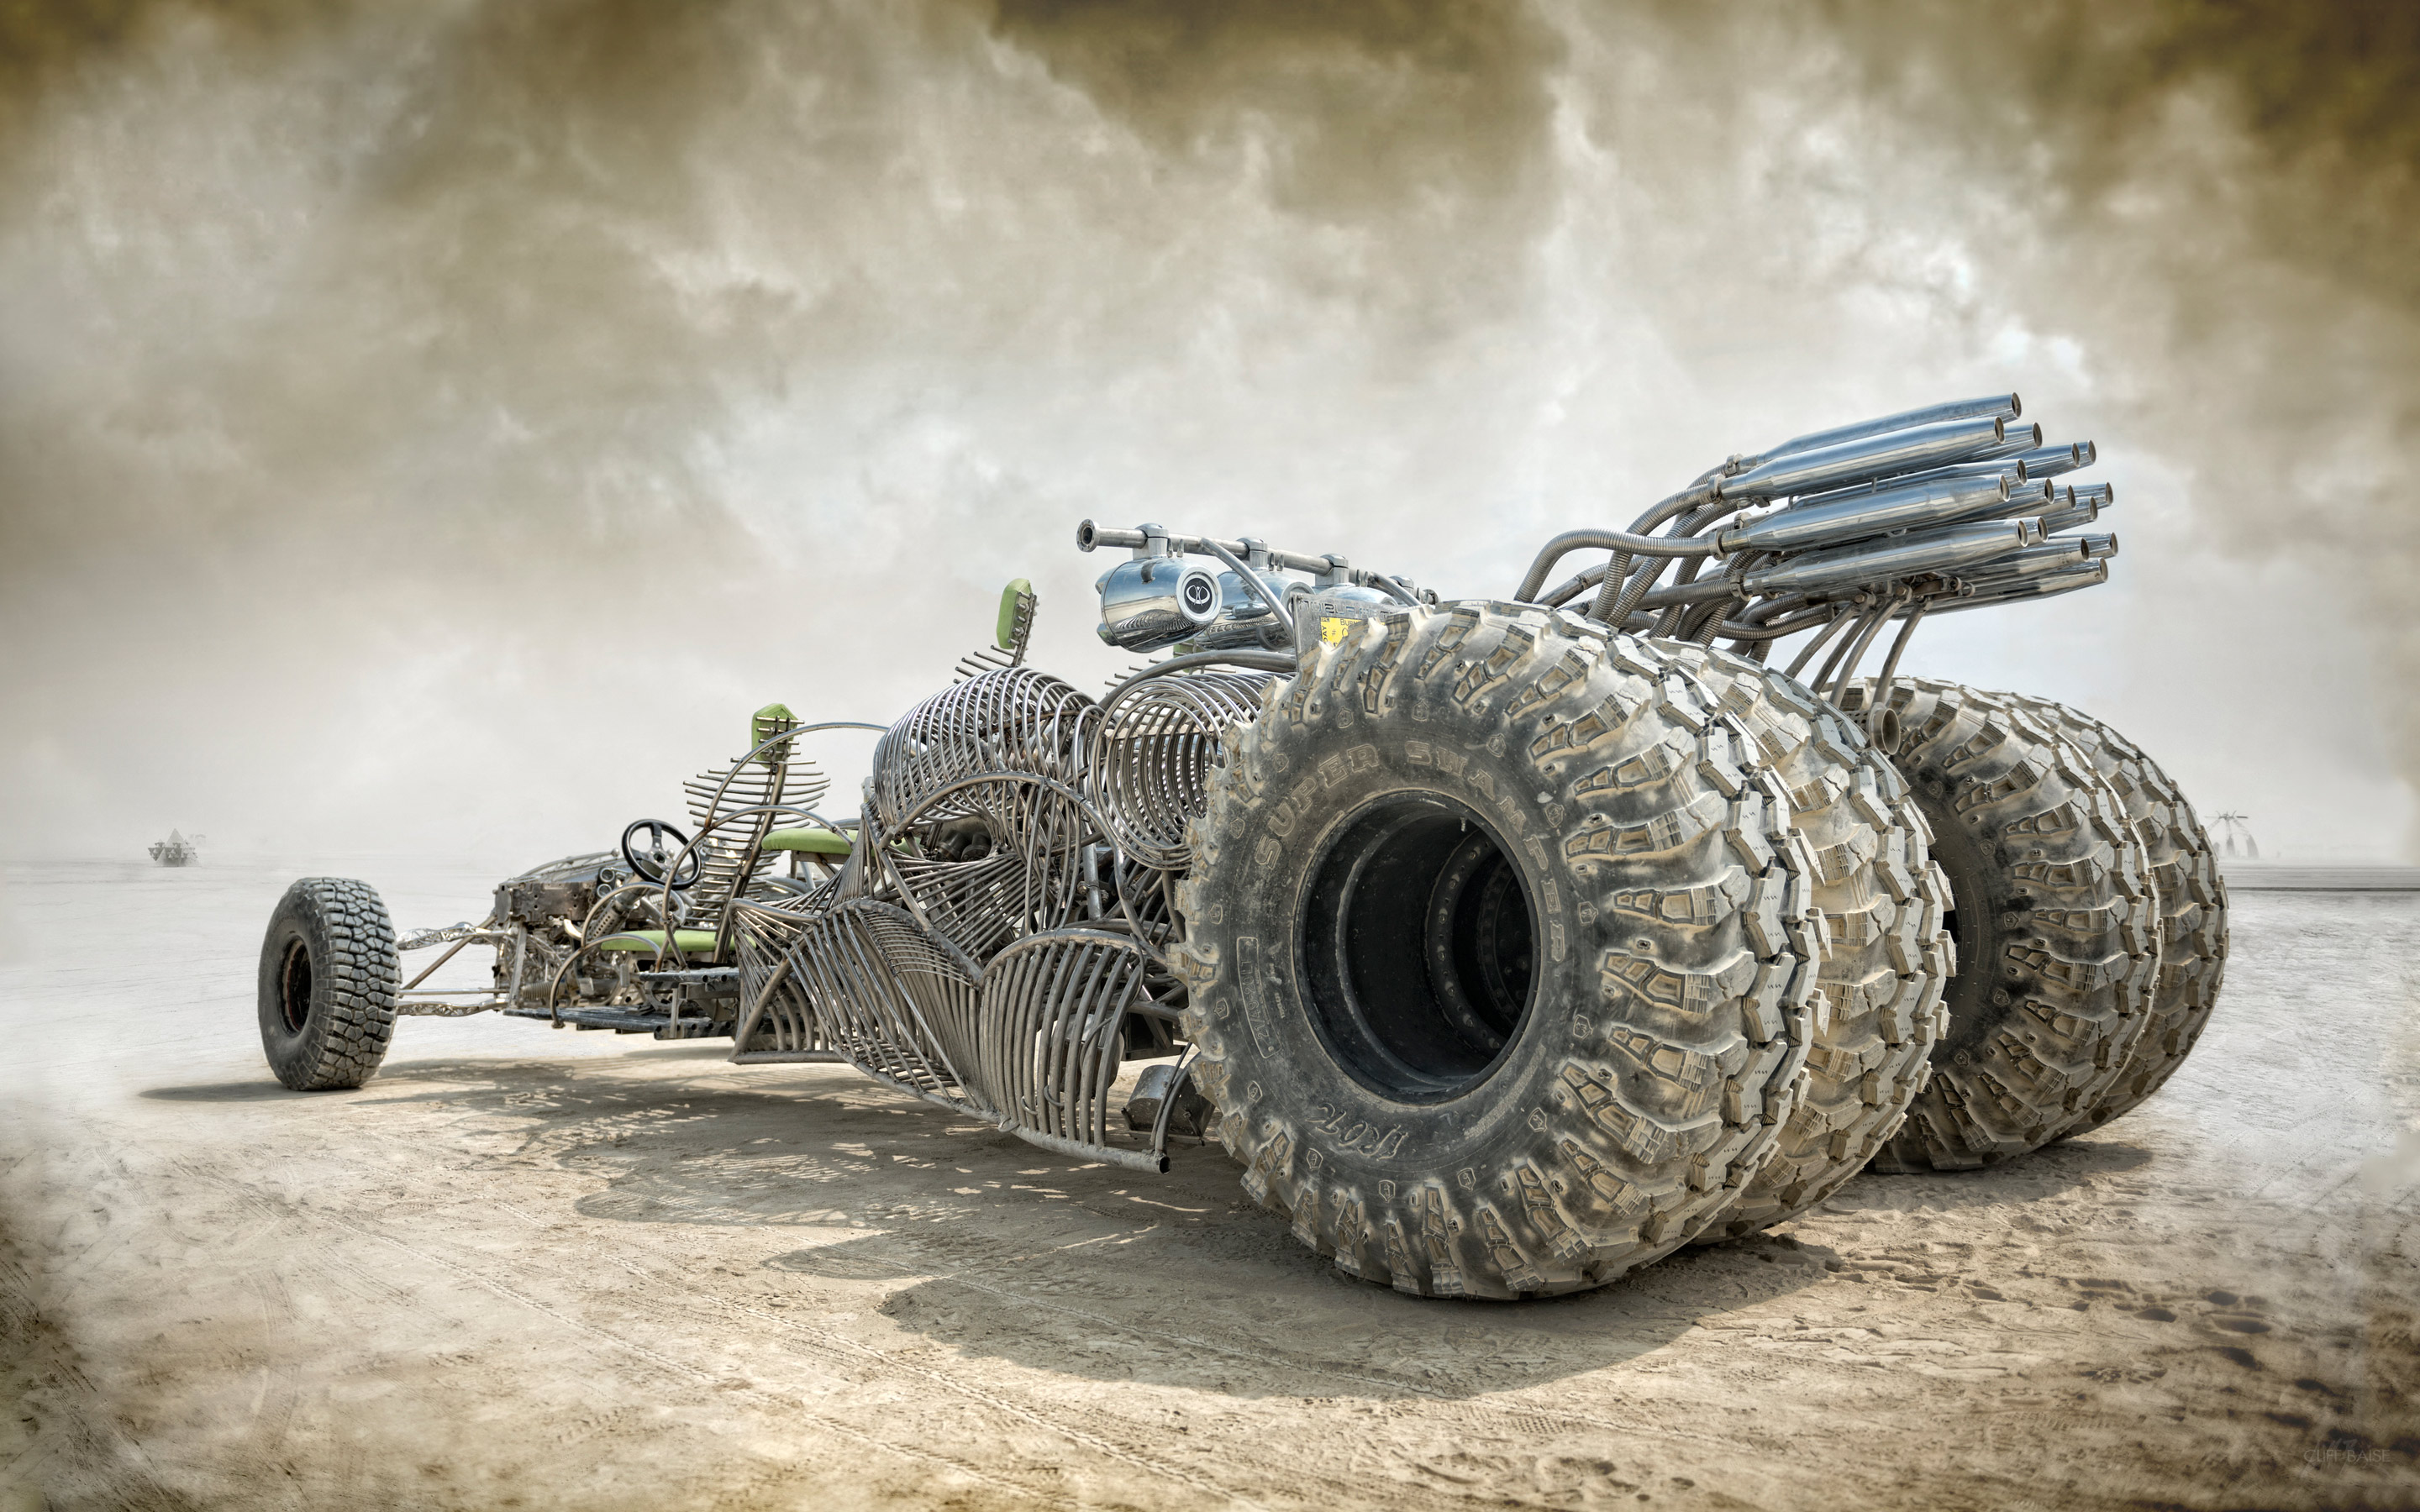 Mad Max Fantasy Car HD Wallpaper 2880x1800